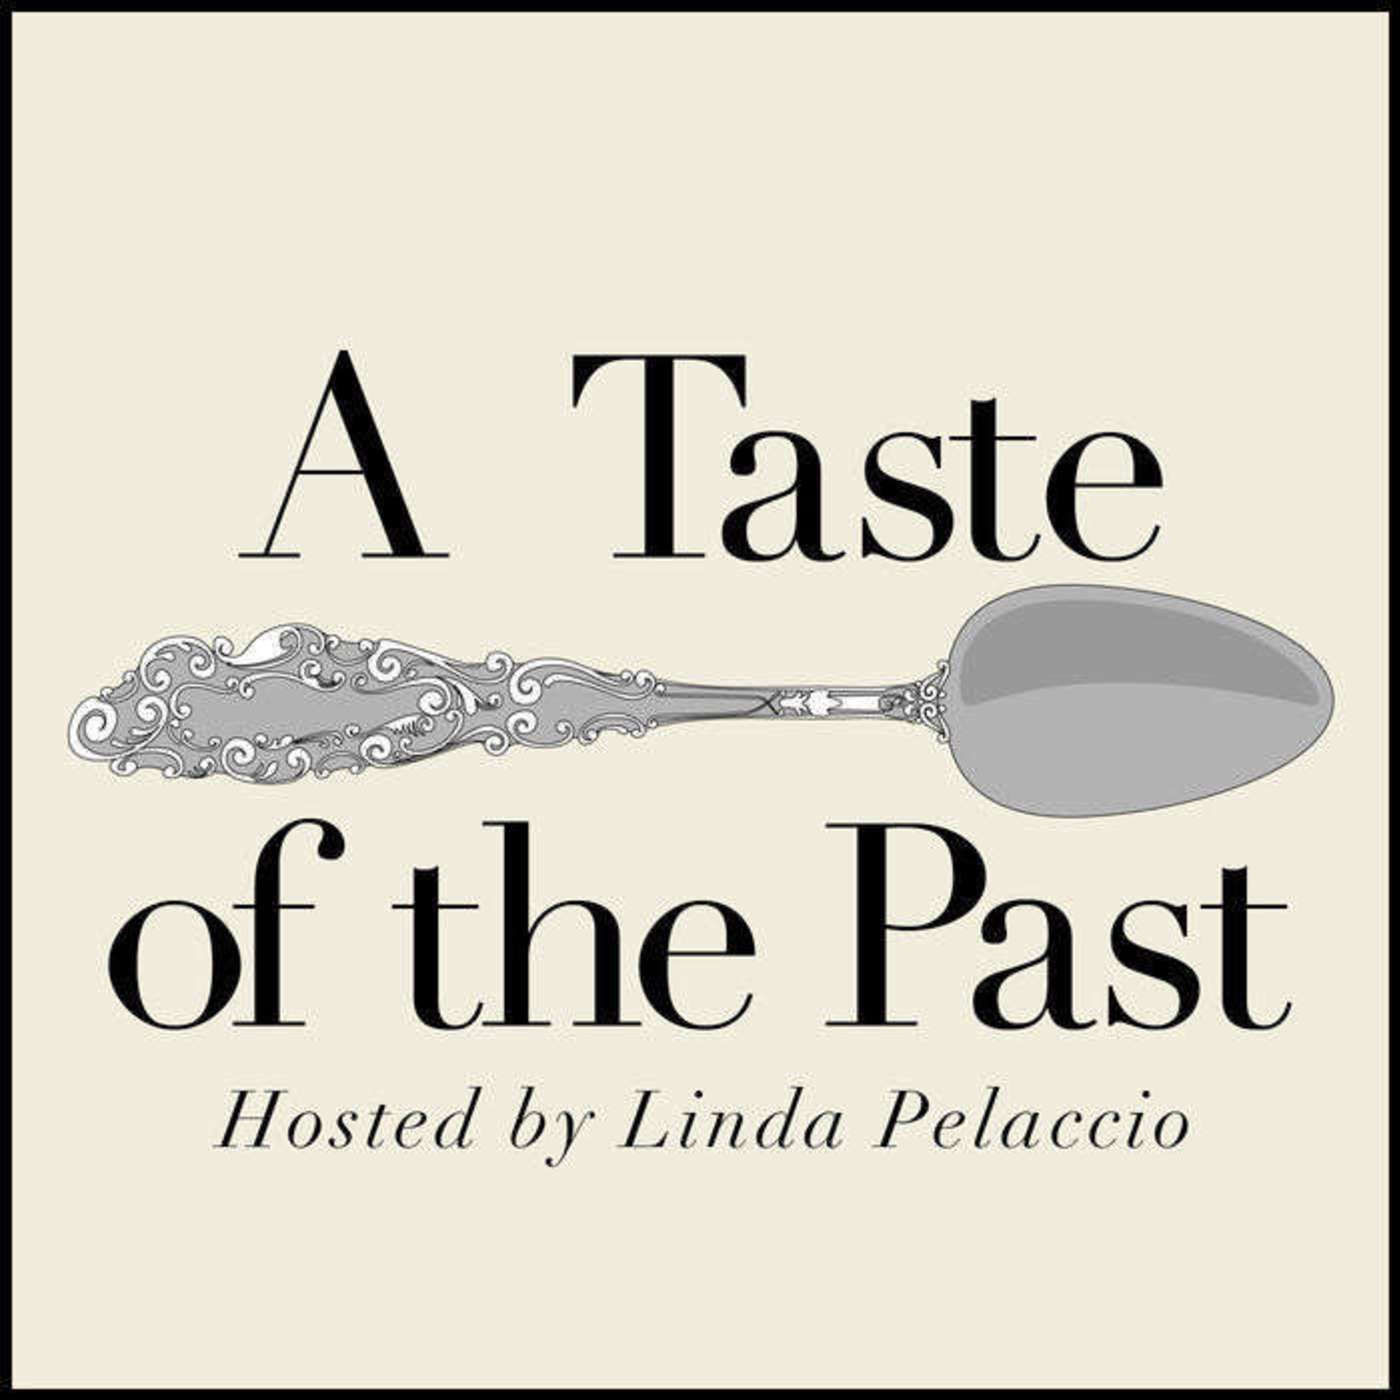 Episode 208: Sugar and Sweets Around the World